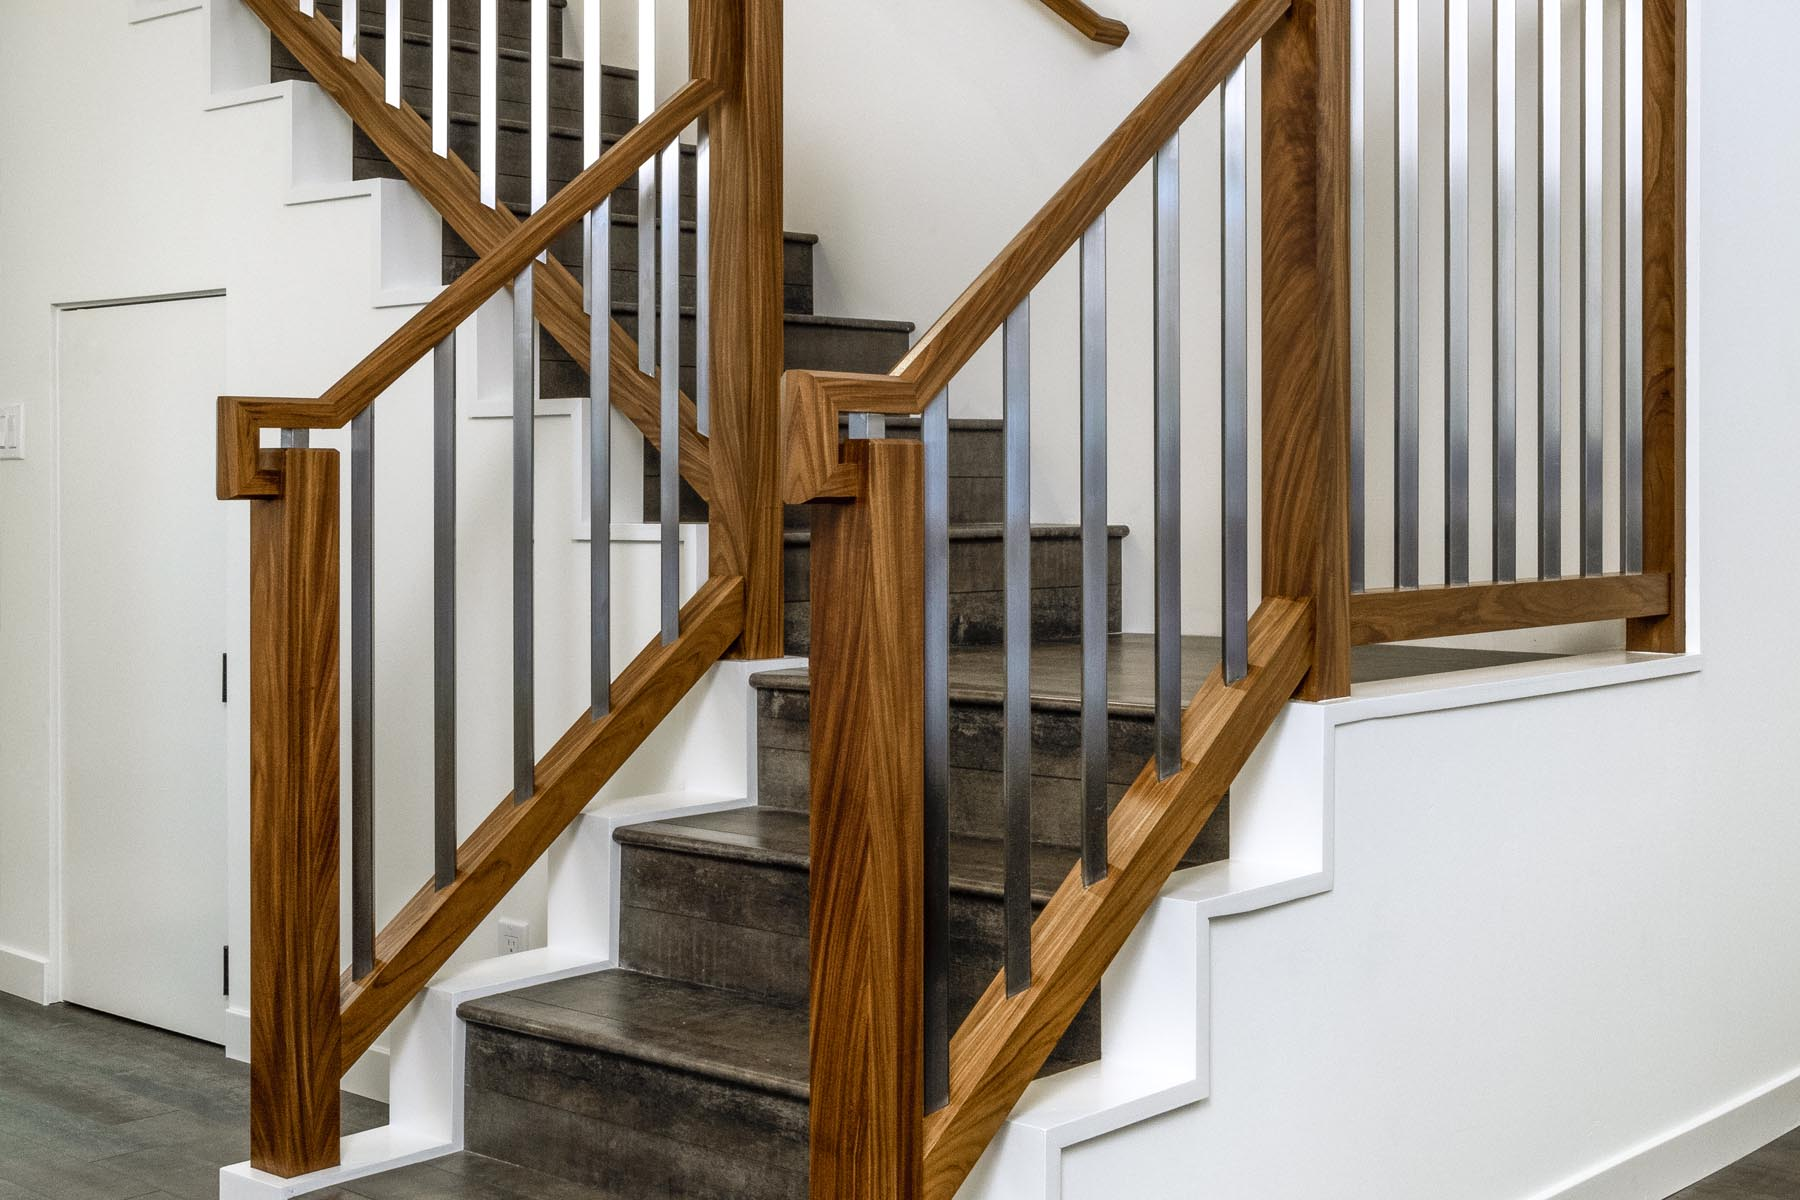 Wyss staircase residential